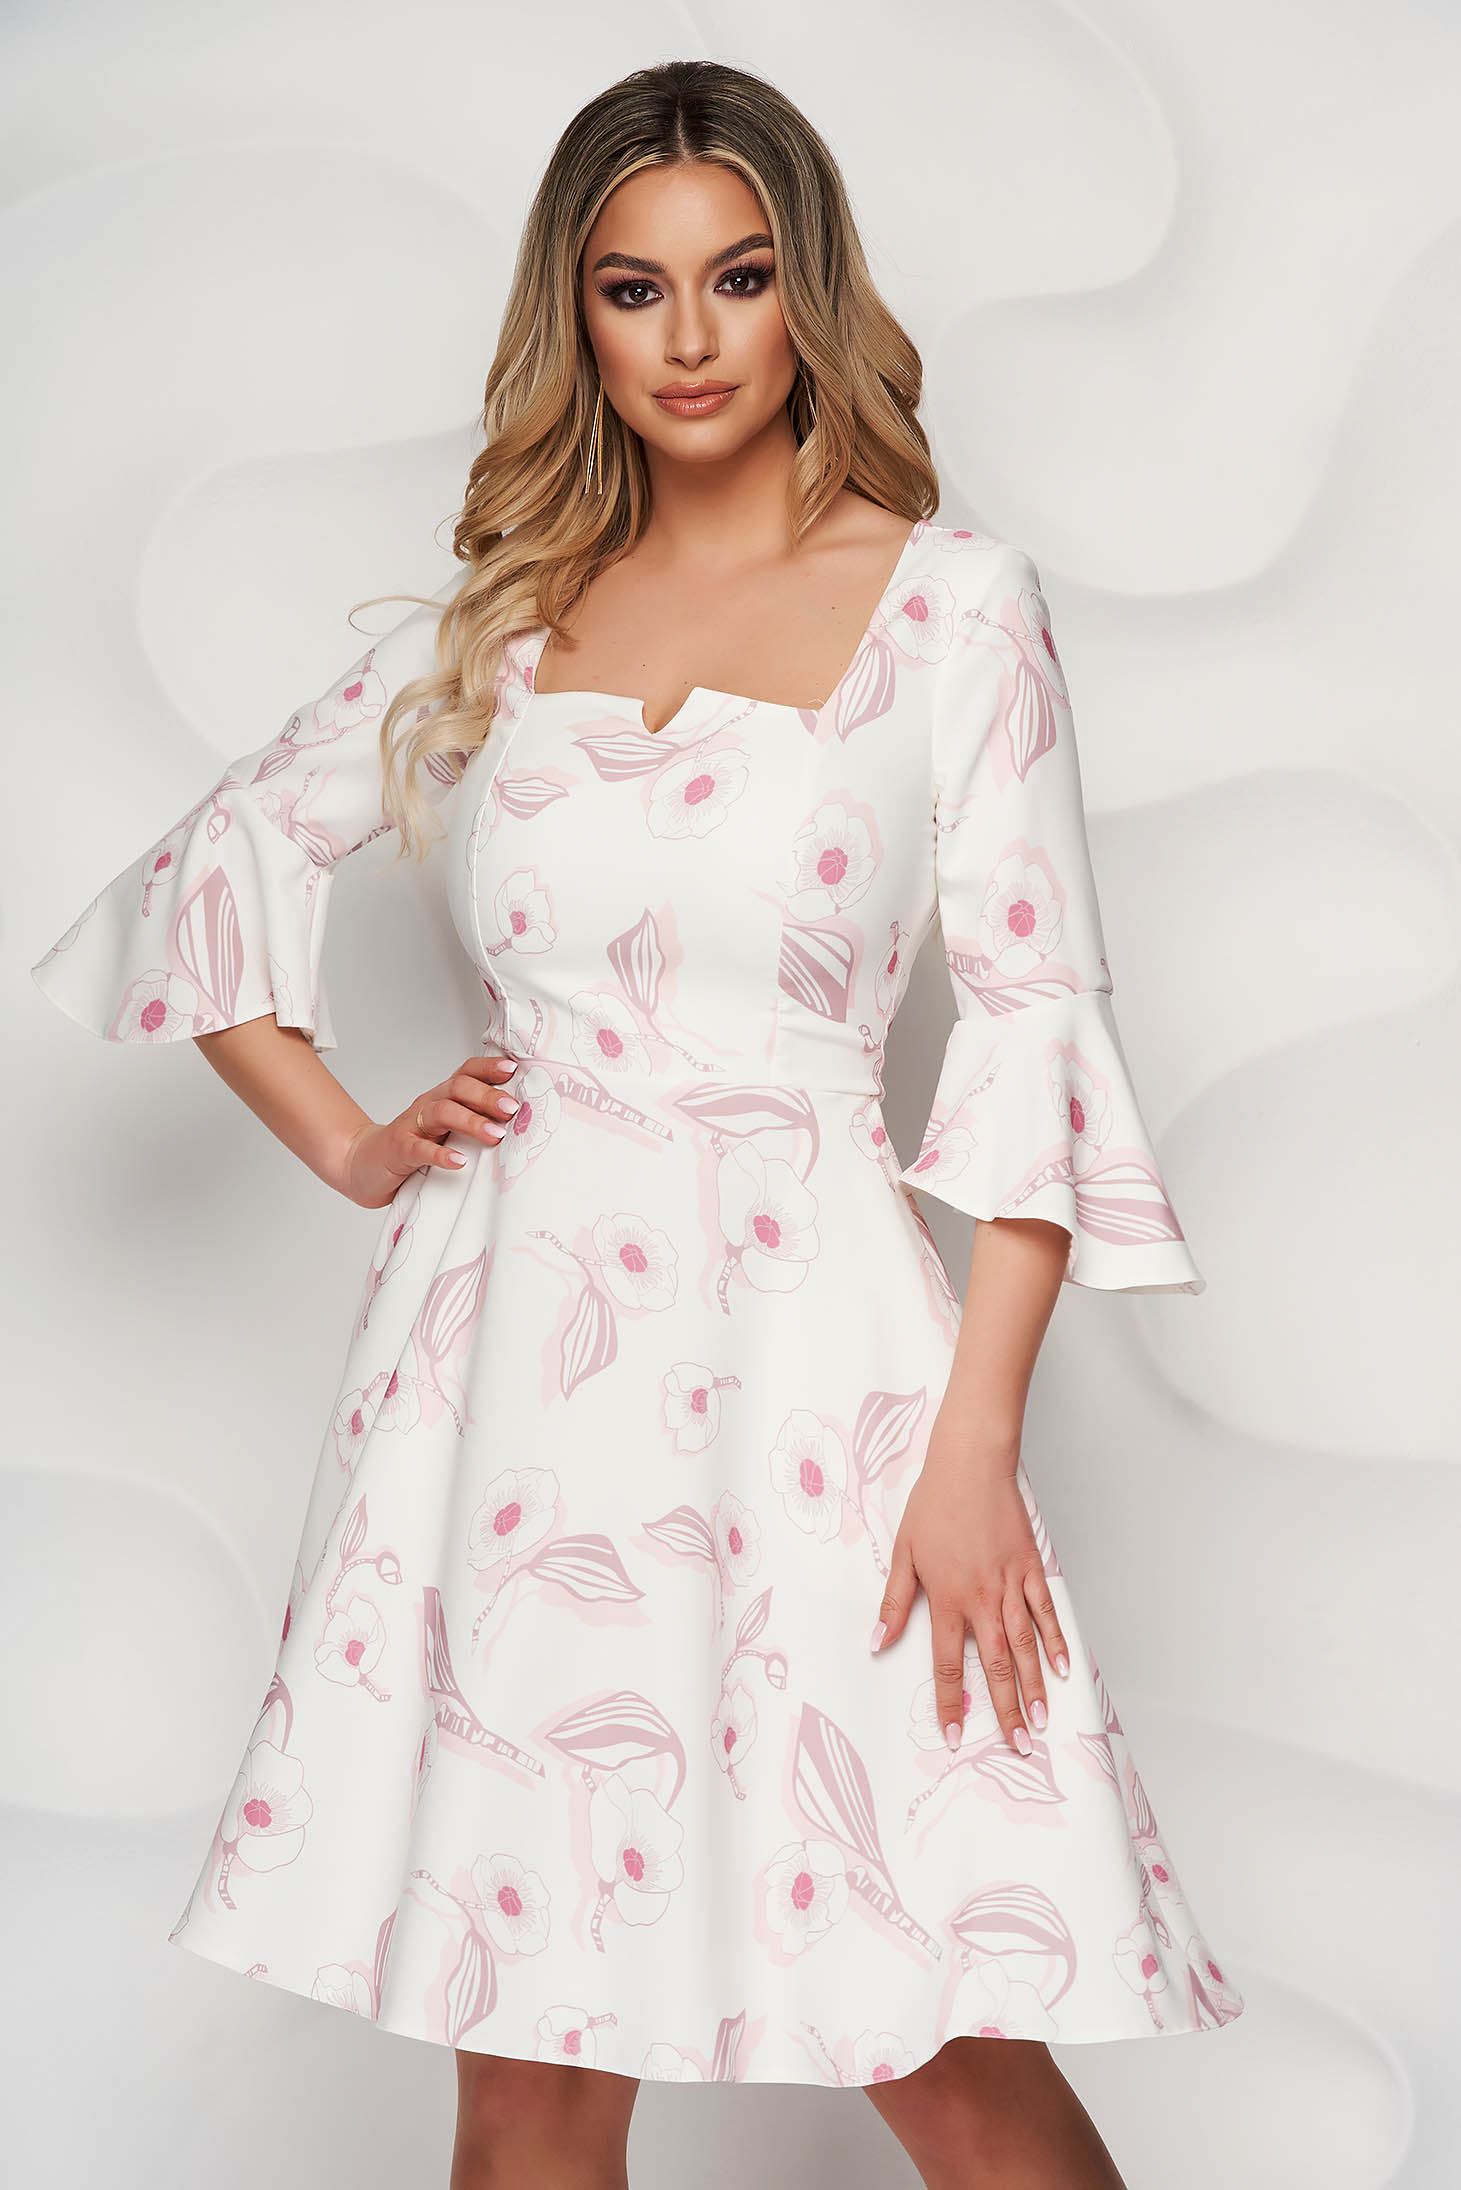 StarShinerS dress elegant with floral print cloche with bell sleeve